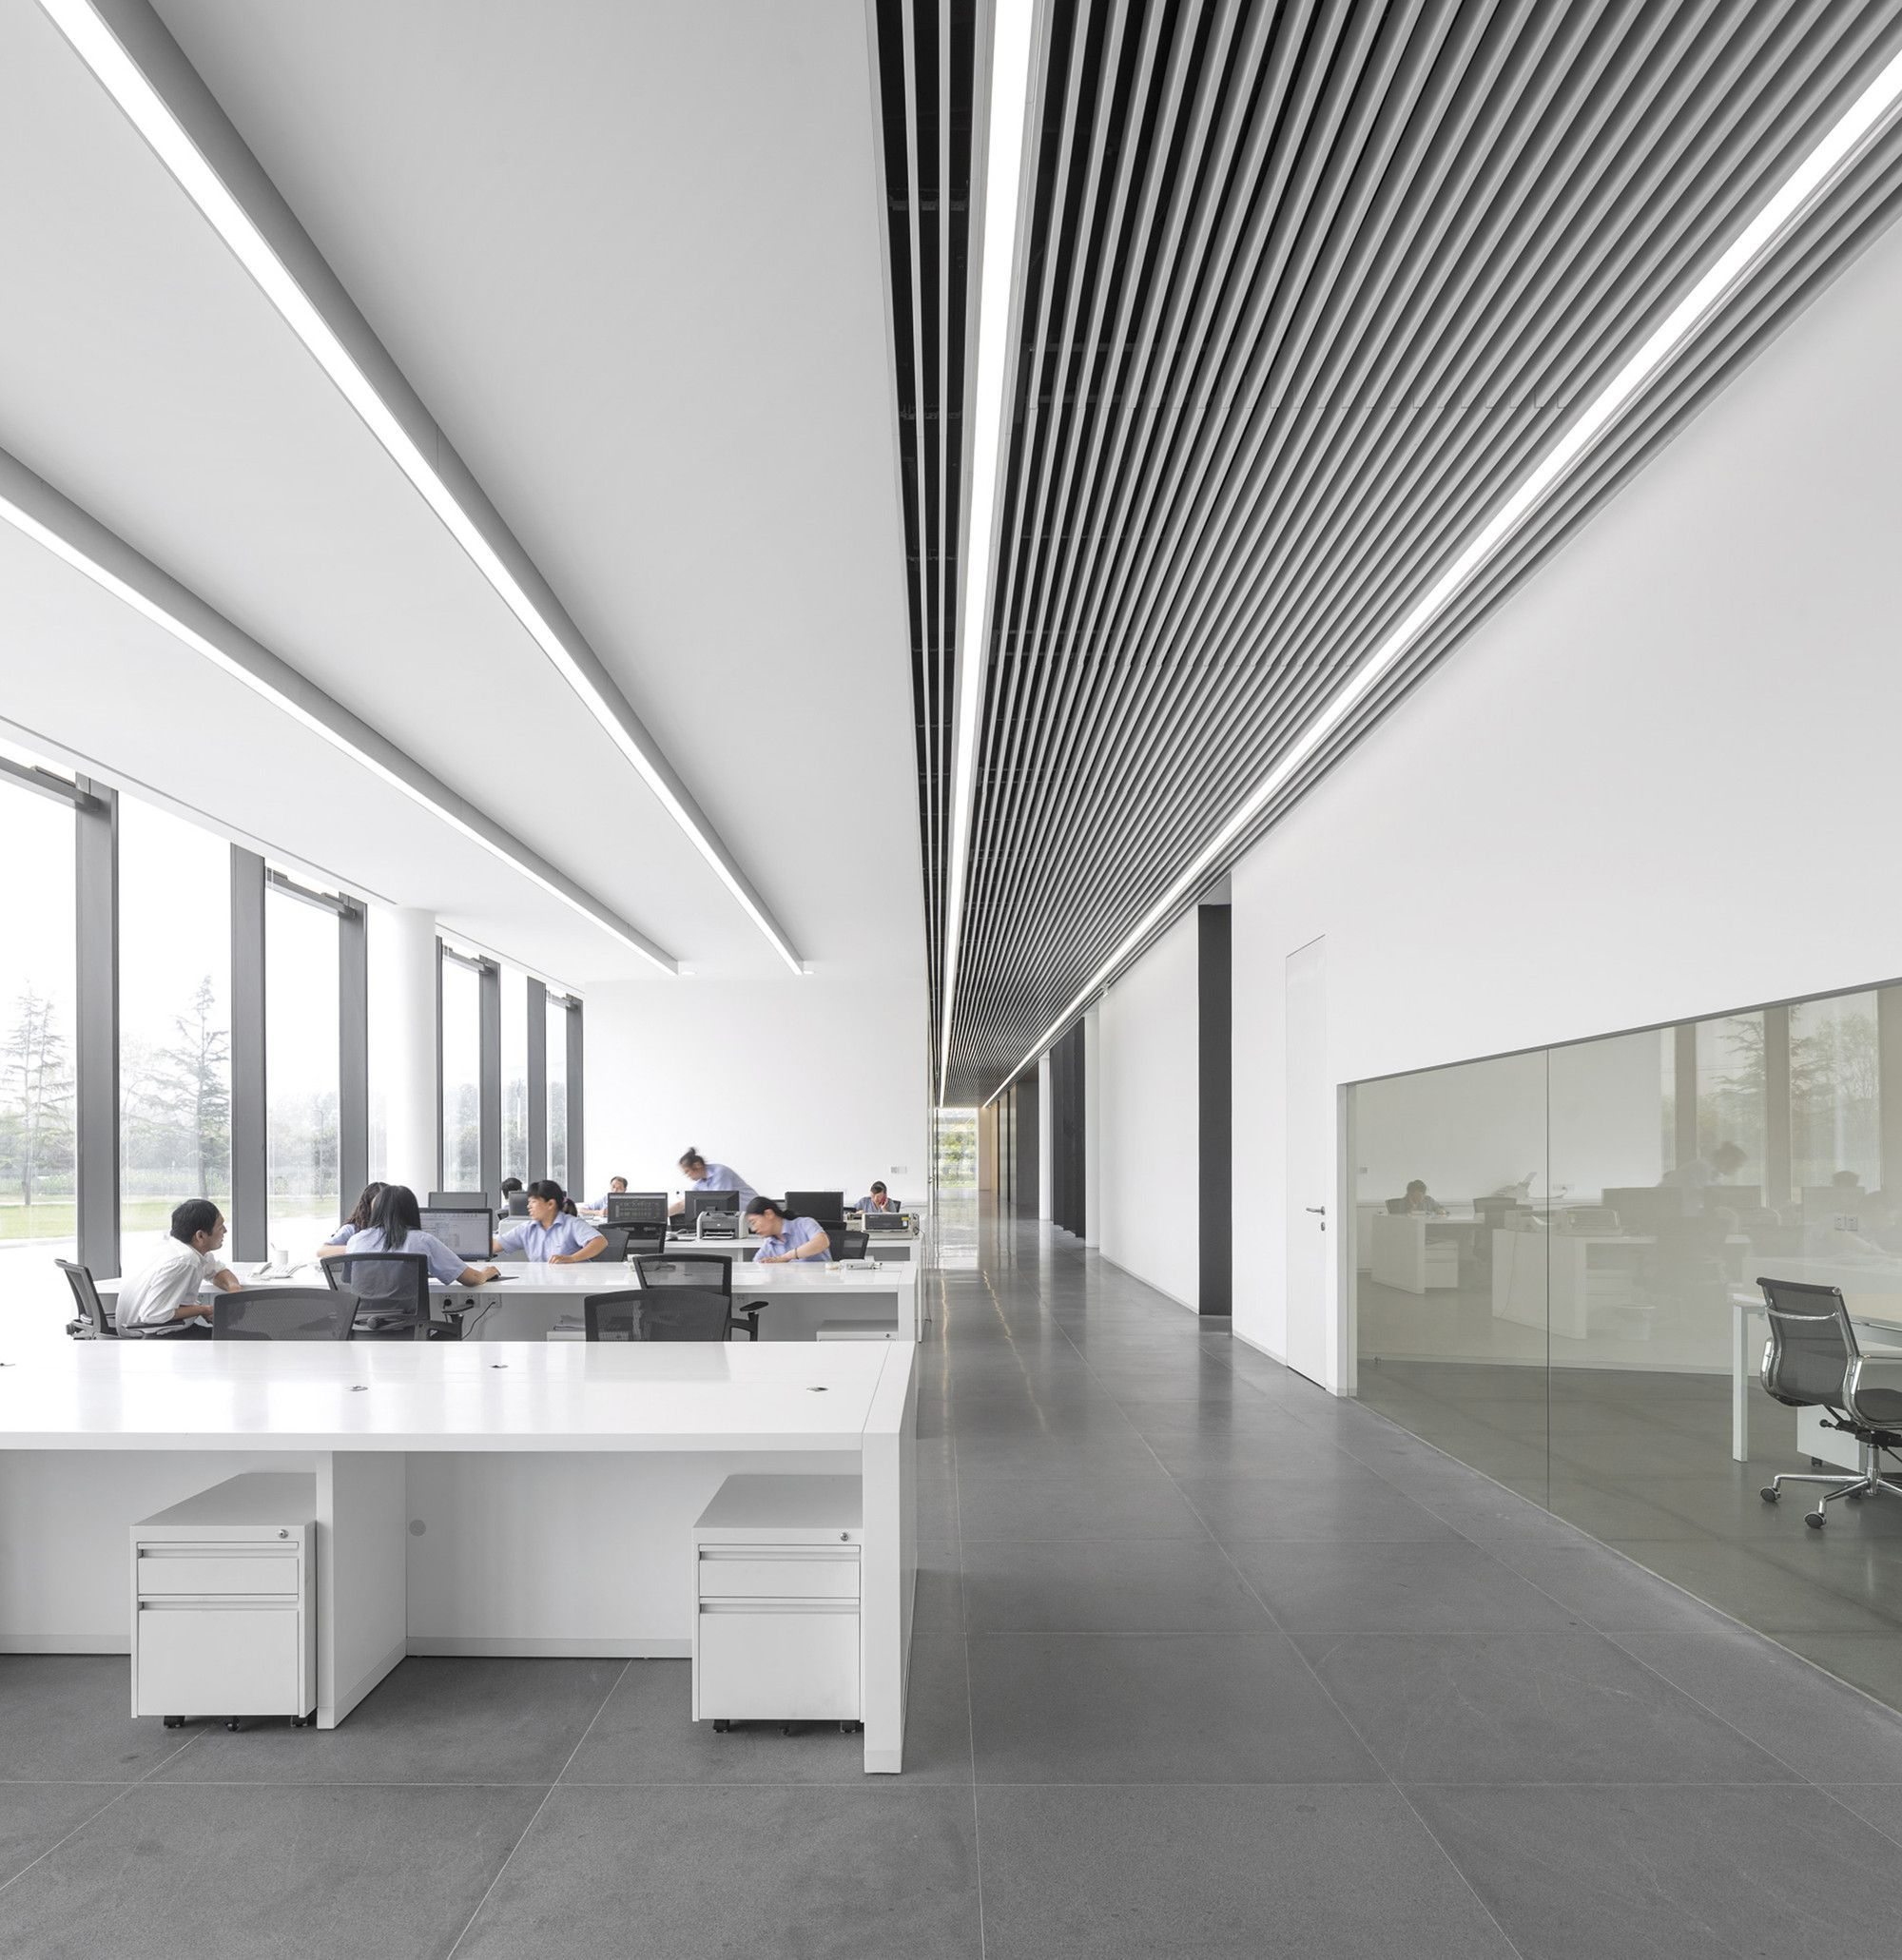 of TaiwanGlass Donghai Office Building / WZWX Architecture Group - 2 Gallery - TaiwanGlass Donghai Office Building / WZWX Architecture Group - 2